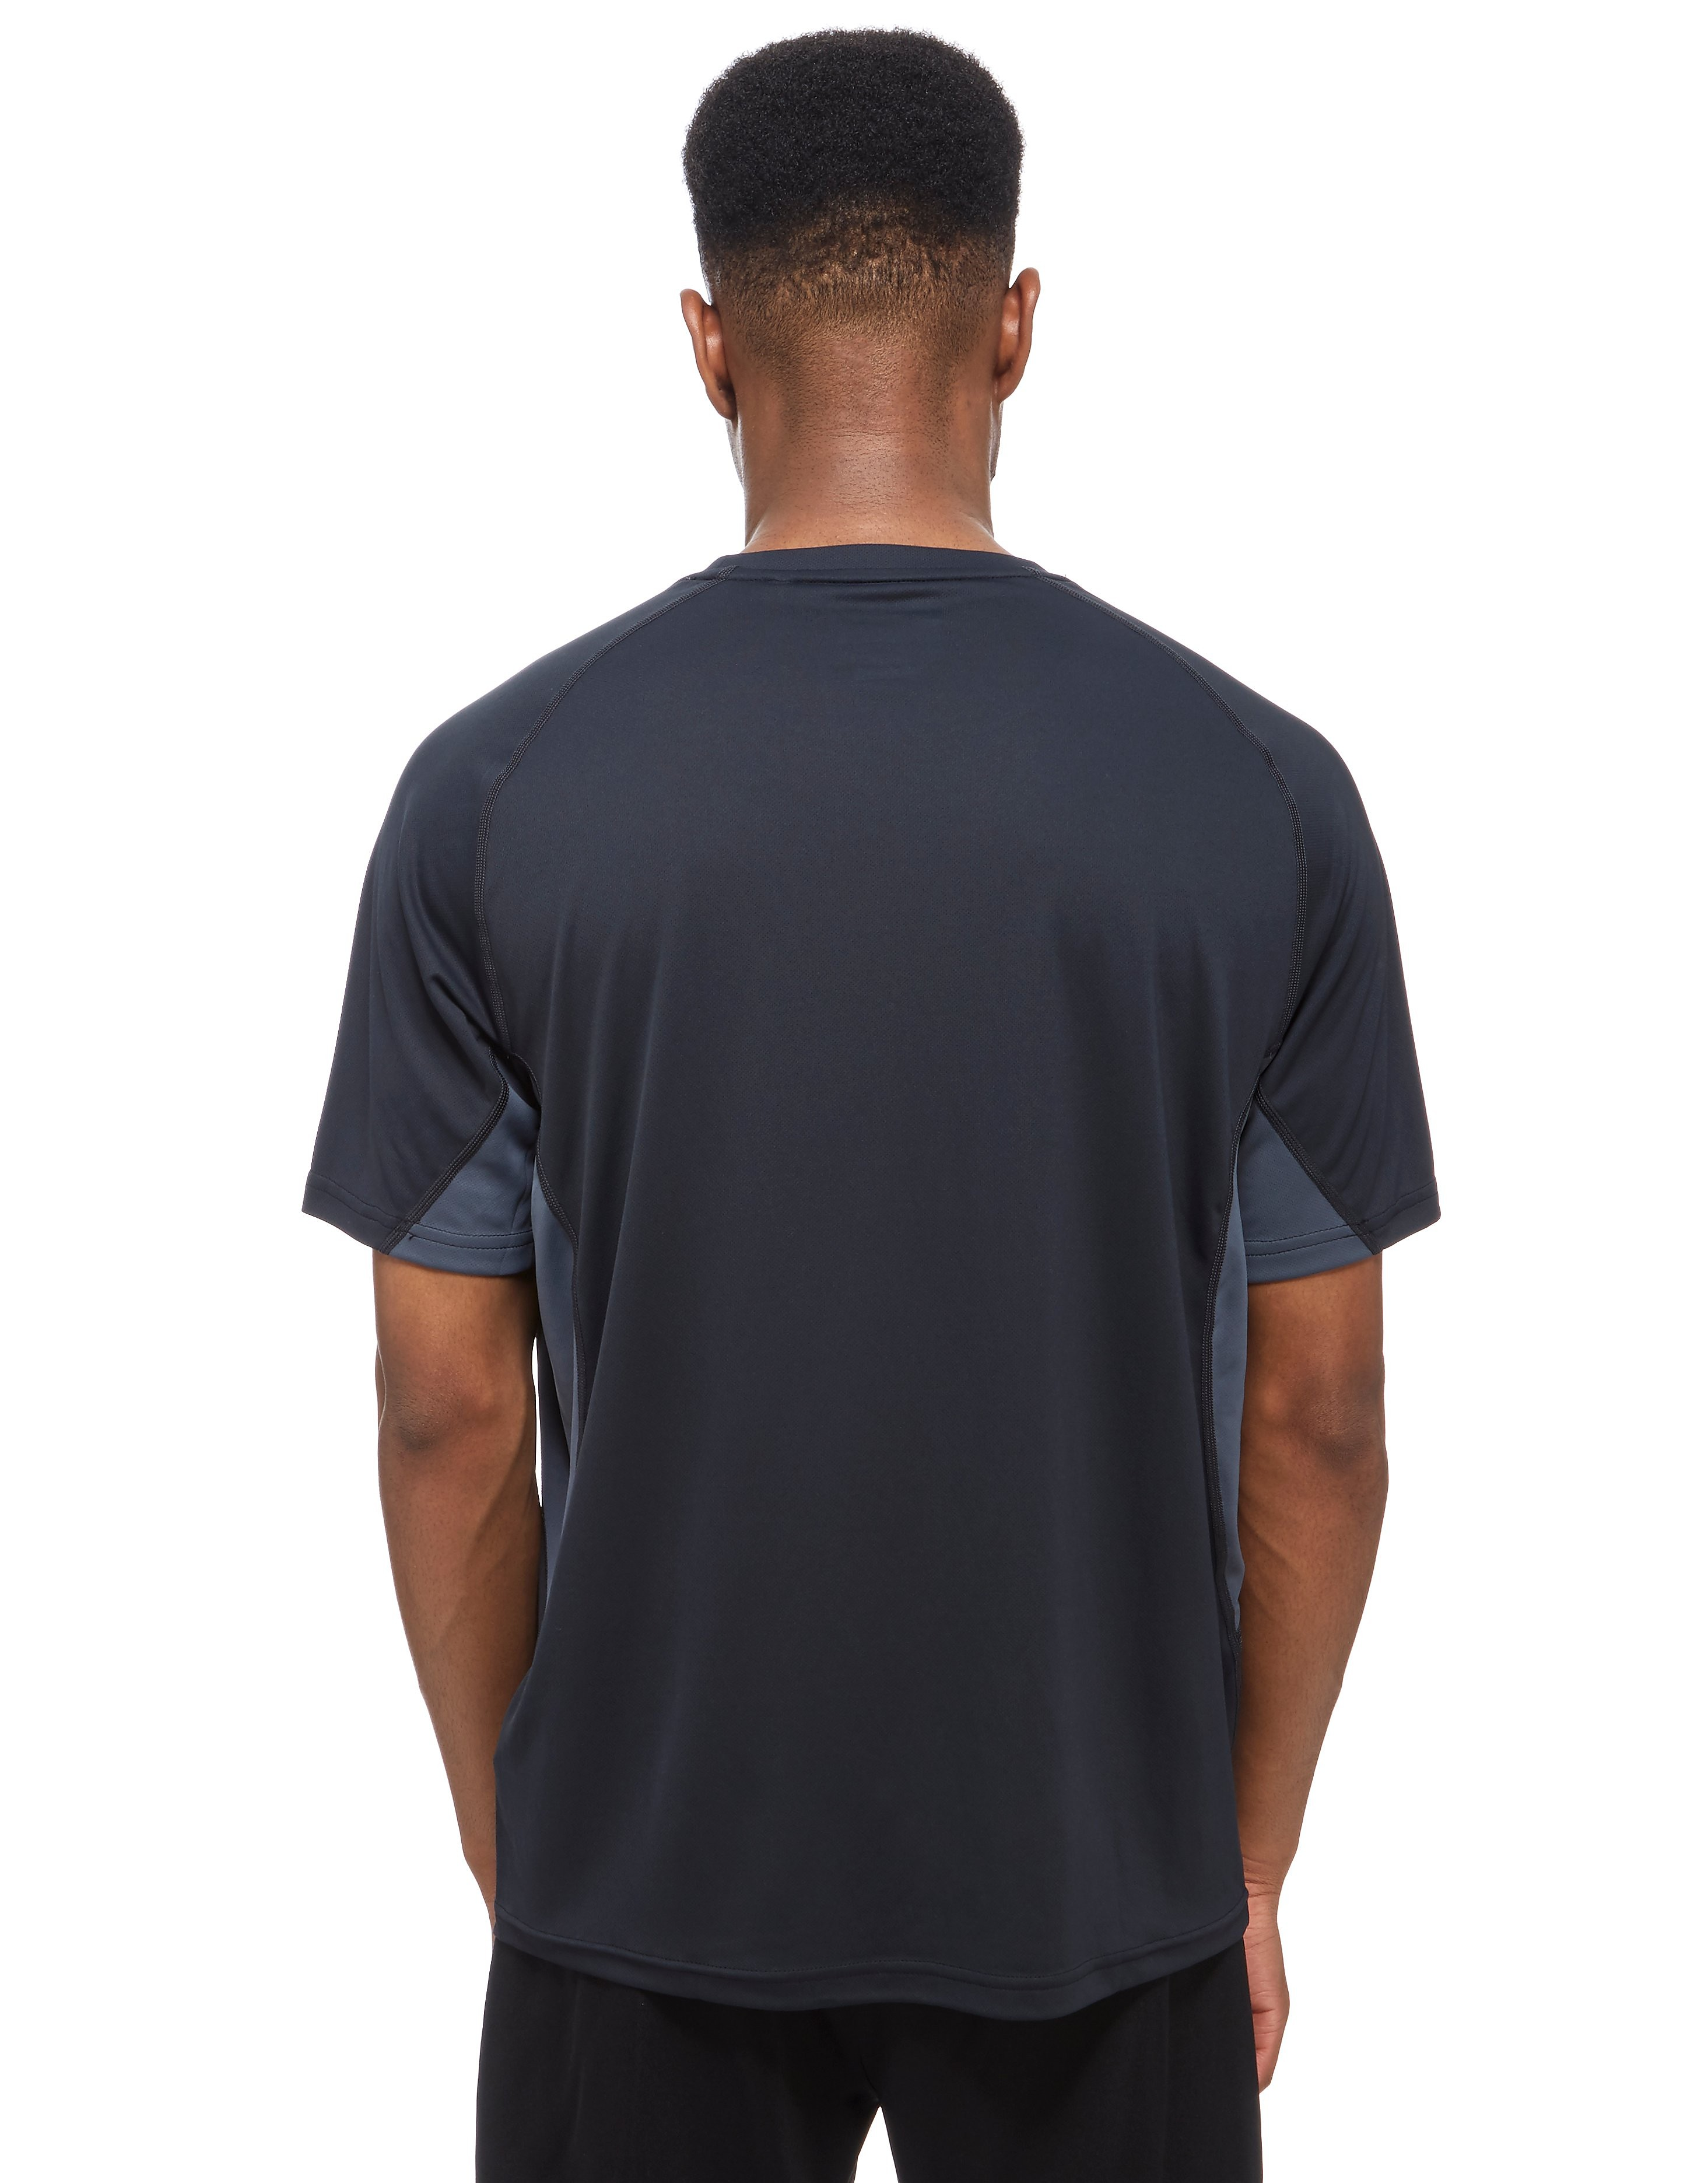 Berghaus Tech Short Sleeve T-Shirt